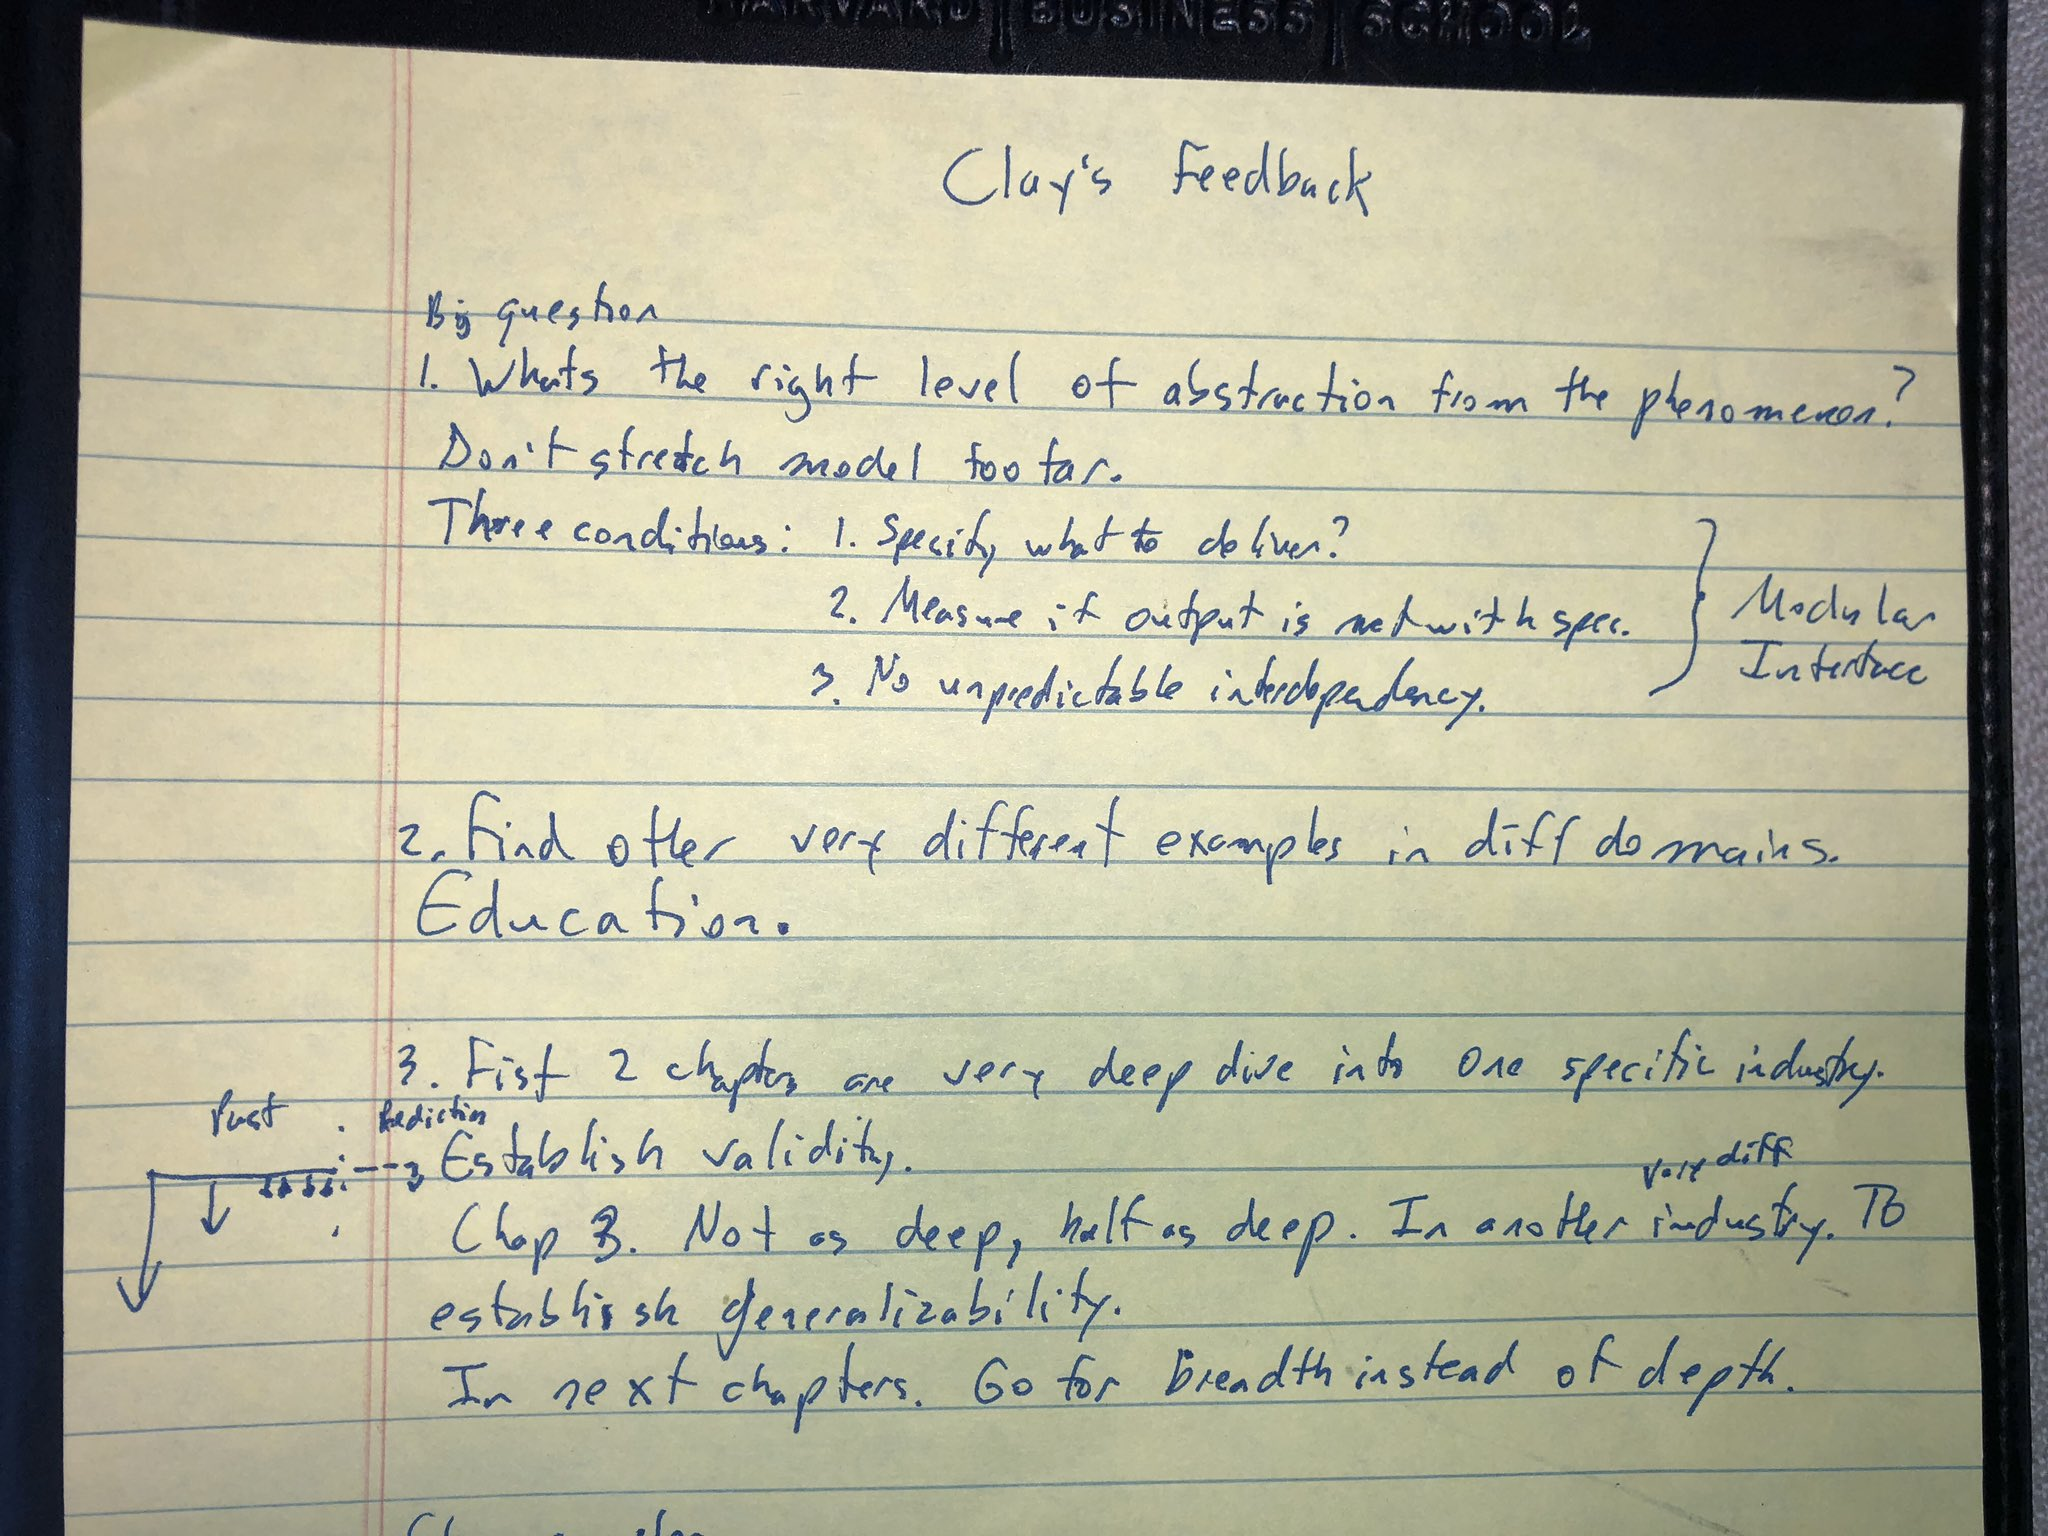 This was Clayton Christensen's feedback to me when I first showed him my ideas about #decoupling. He also explained to me how he structured The Innovators Dillema. RIP my hero. https://t.co/4dk3EJTFfg